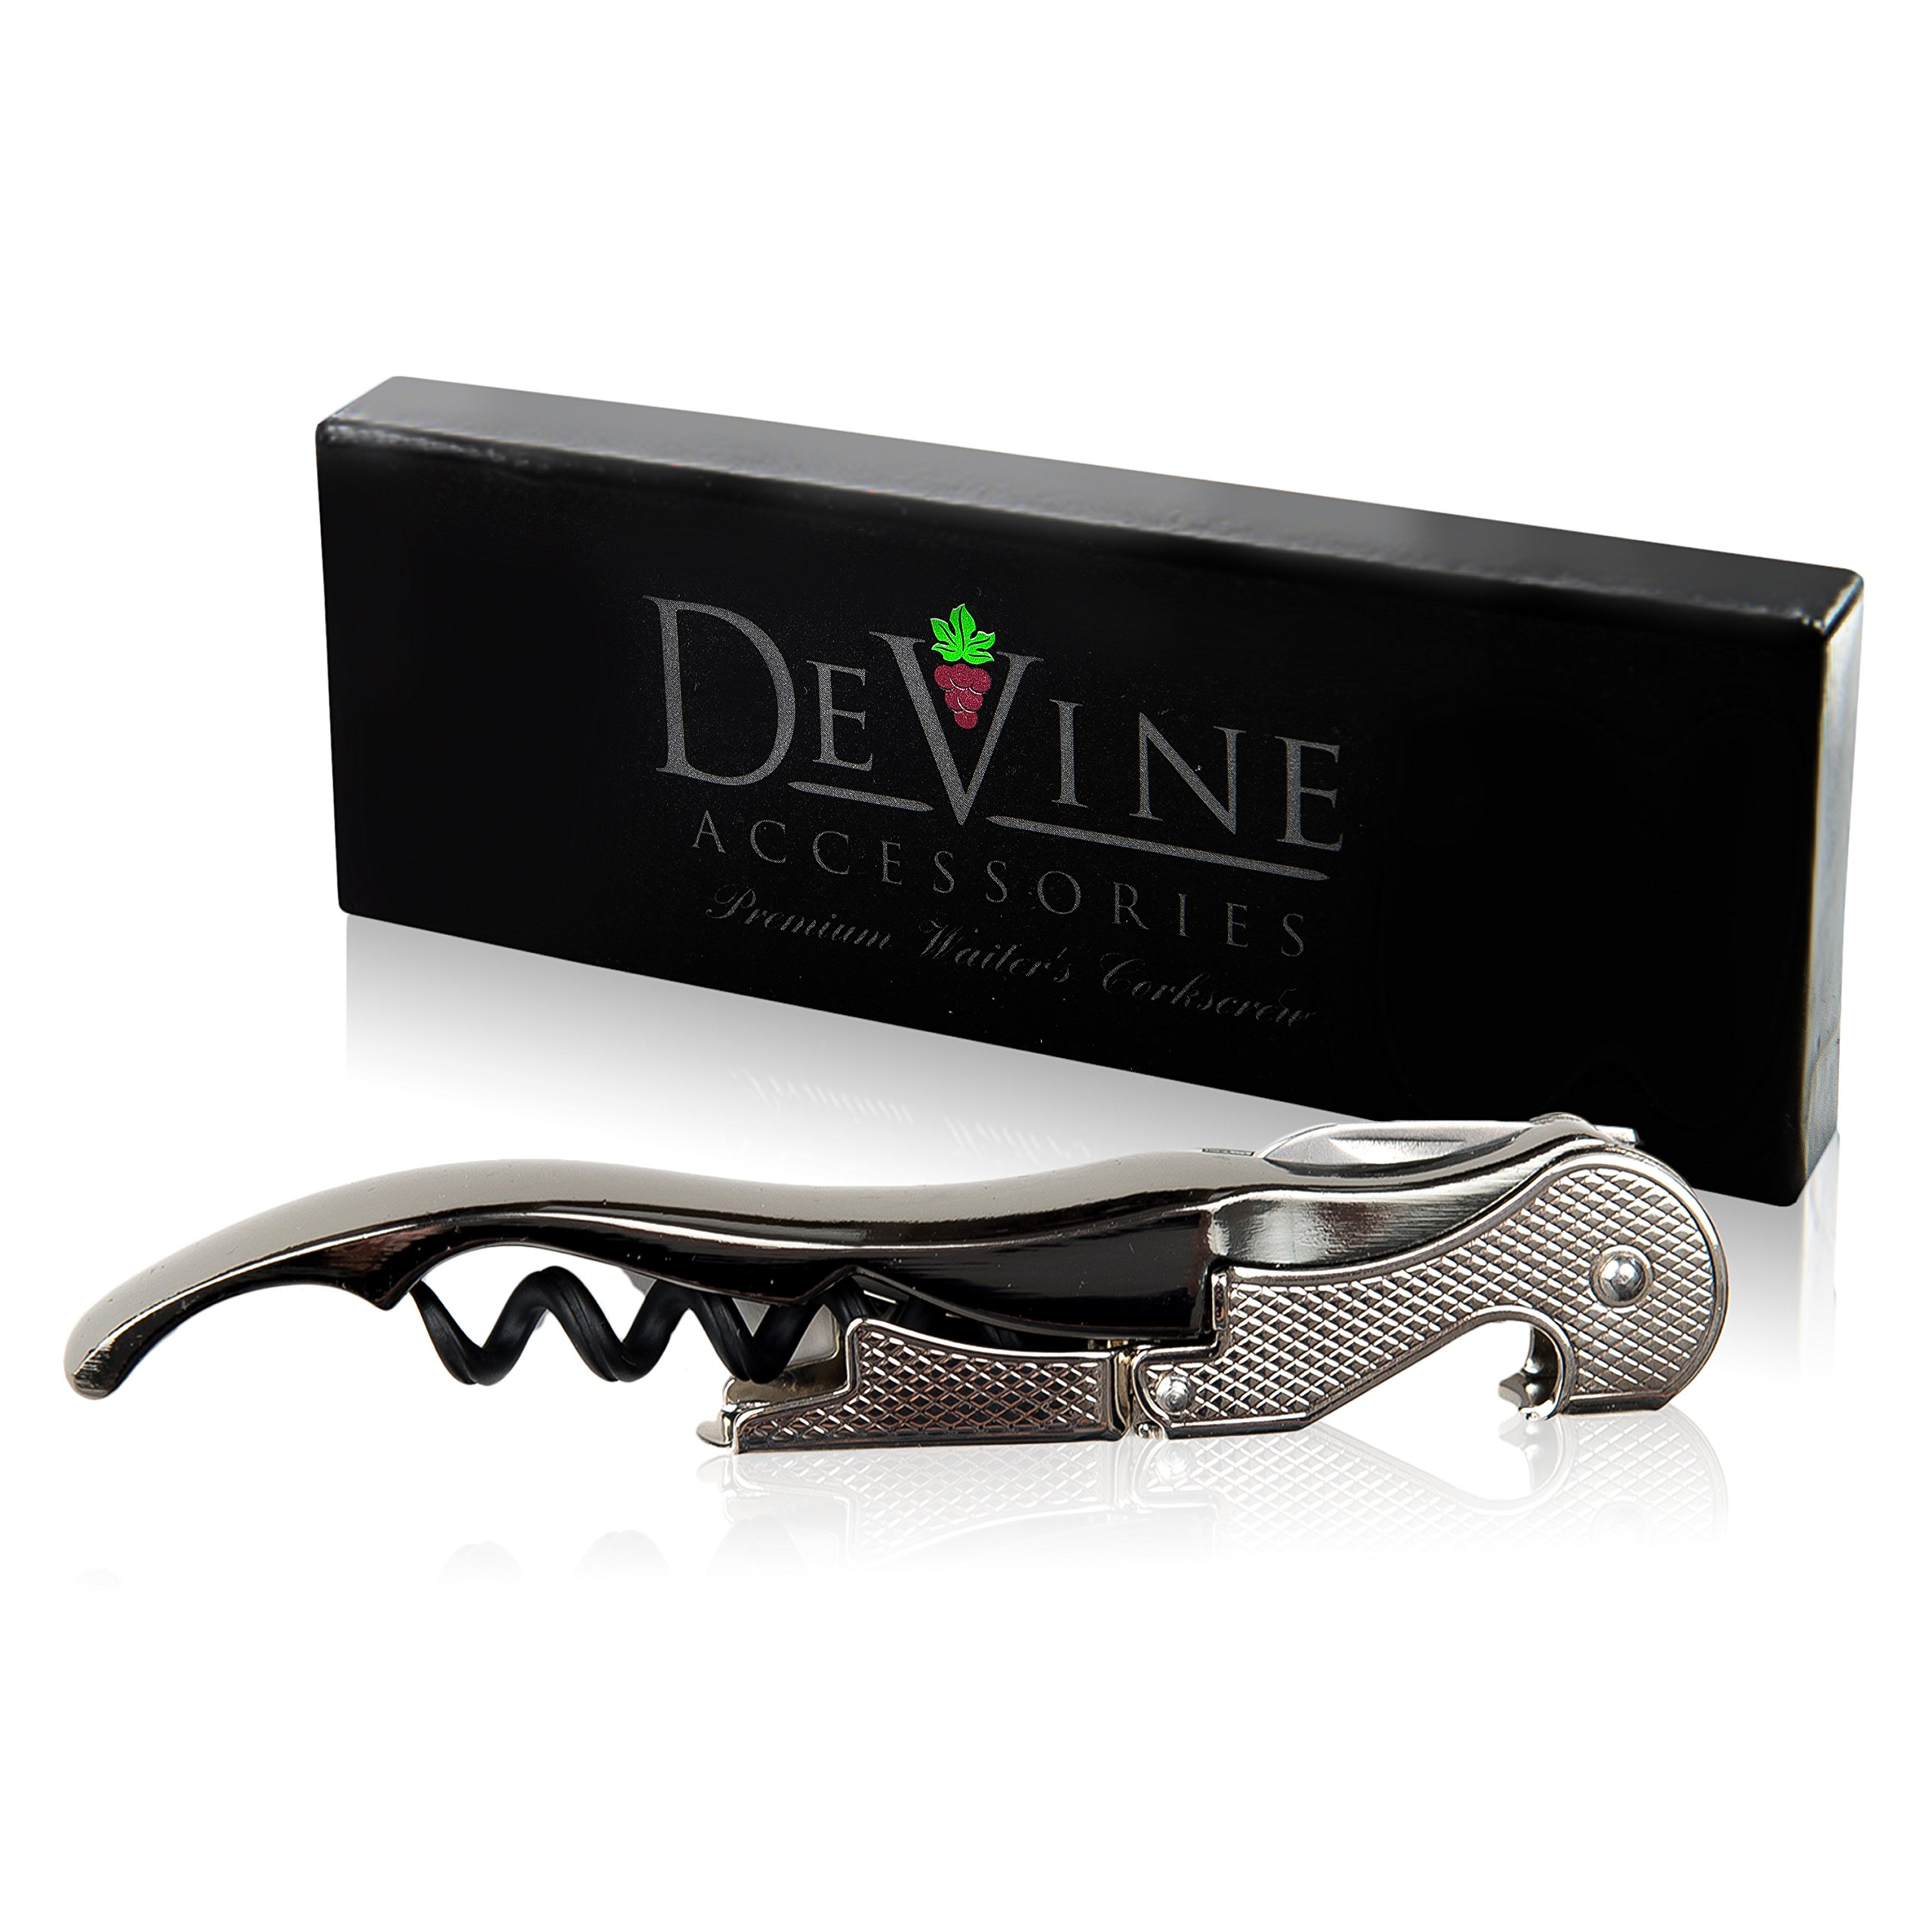 Premium Waiter's Corkscrew – Professional Grade Handheld Wine and Bottle Opener with Metalic Handle, Double Hinged Lever and Foil Cutter - by DeVine Accessories by DeVine Accessories (Image #3)